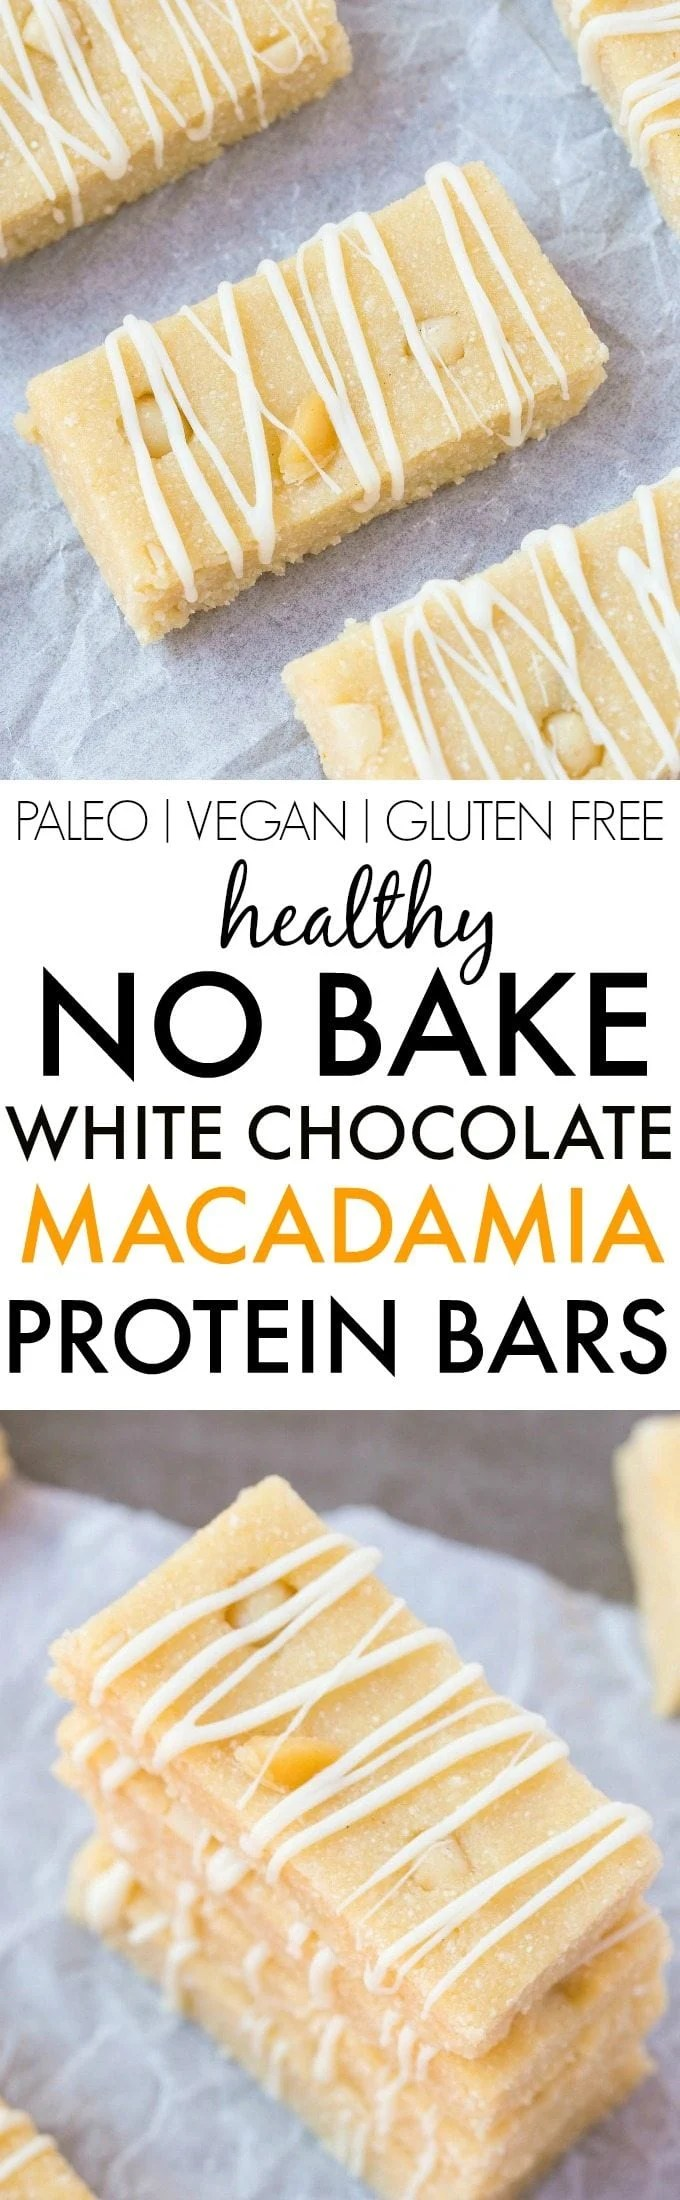 Healthy No Bake White Chocolate Macadamia Nut Protein Bars- Quick, easy and simple no cook recipe which tastes like dessert (and better than store bought!)- Portable, fudgy and ready in under 10 minutes! {vegan, gluten free, paleo recipe}- thebigmansworld.com